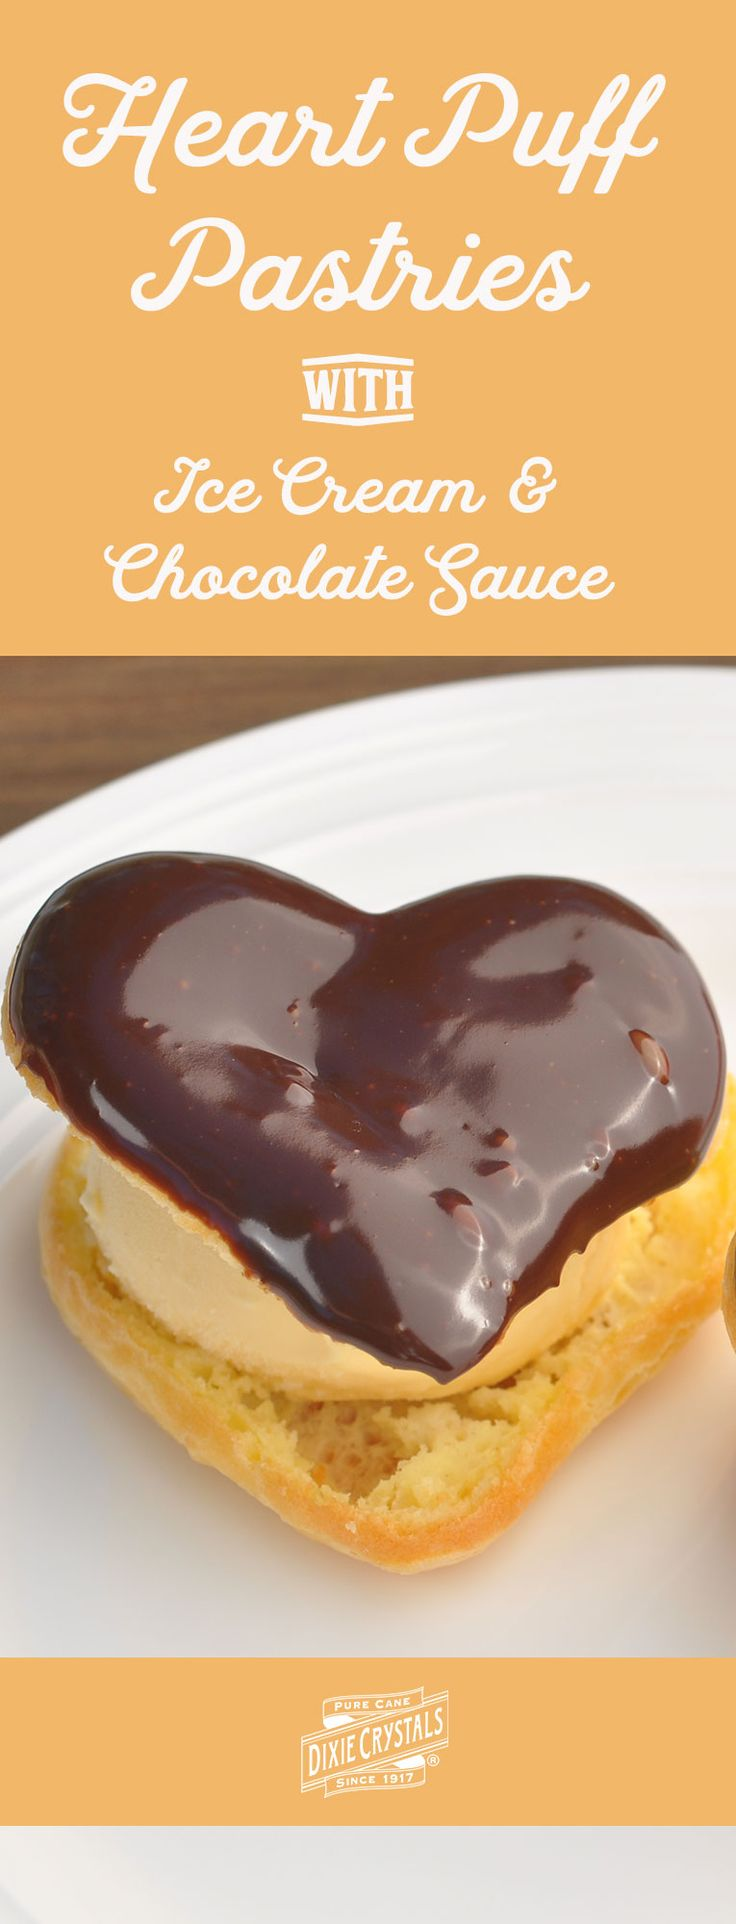 Heart Puff Pastry with Ice Cream & Chocolate Sauce - Delicate puff pastries filled with homemade ice cream (or Creme Chantilly) and dipped in chocolate ganache. This sweet treat makes a great Valentine's Day dessert for someone you love. It's also deliciously beautiful for a shower, Mother's Day, Easter brunch or an anniversary celebration.